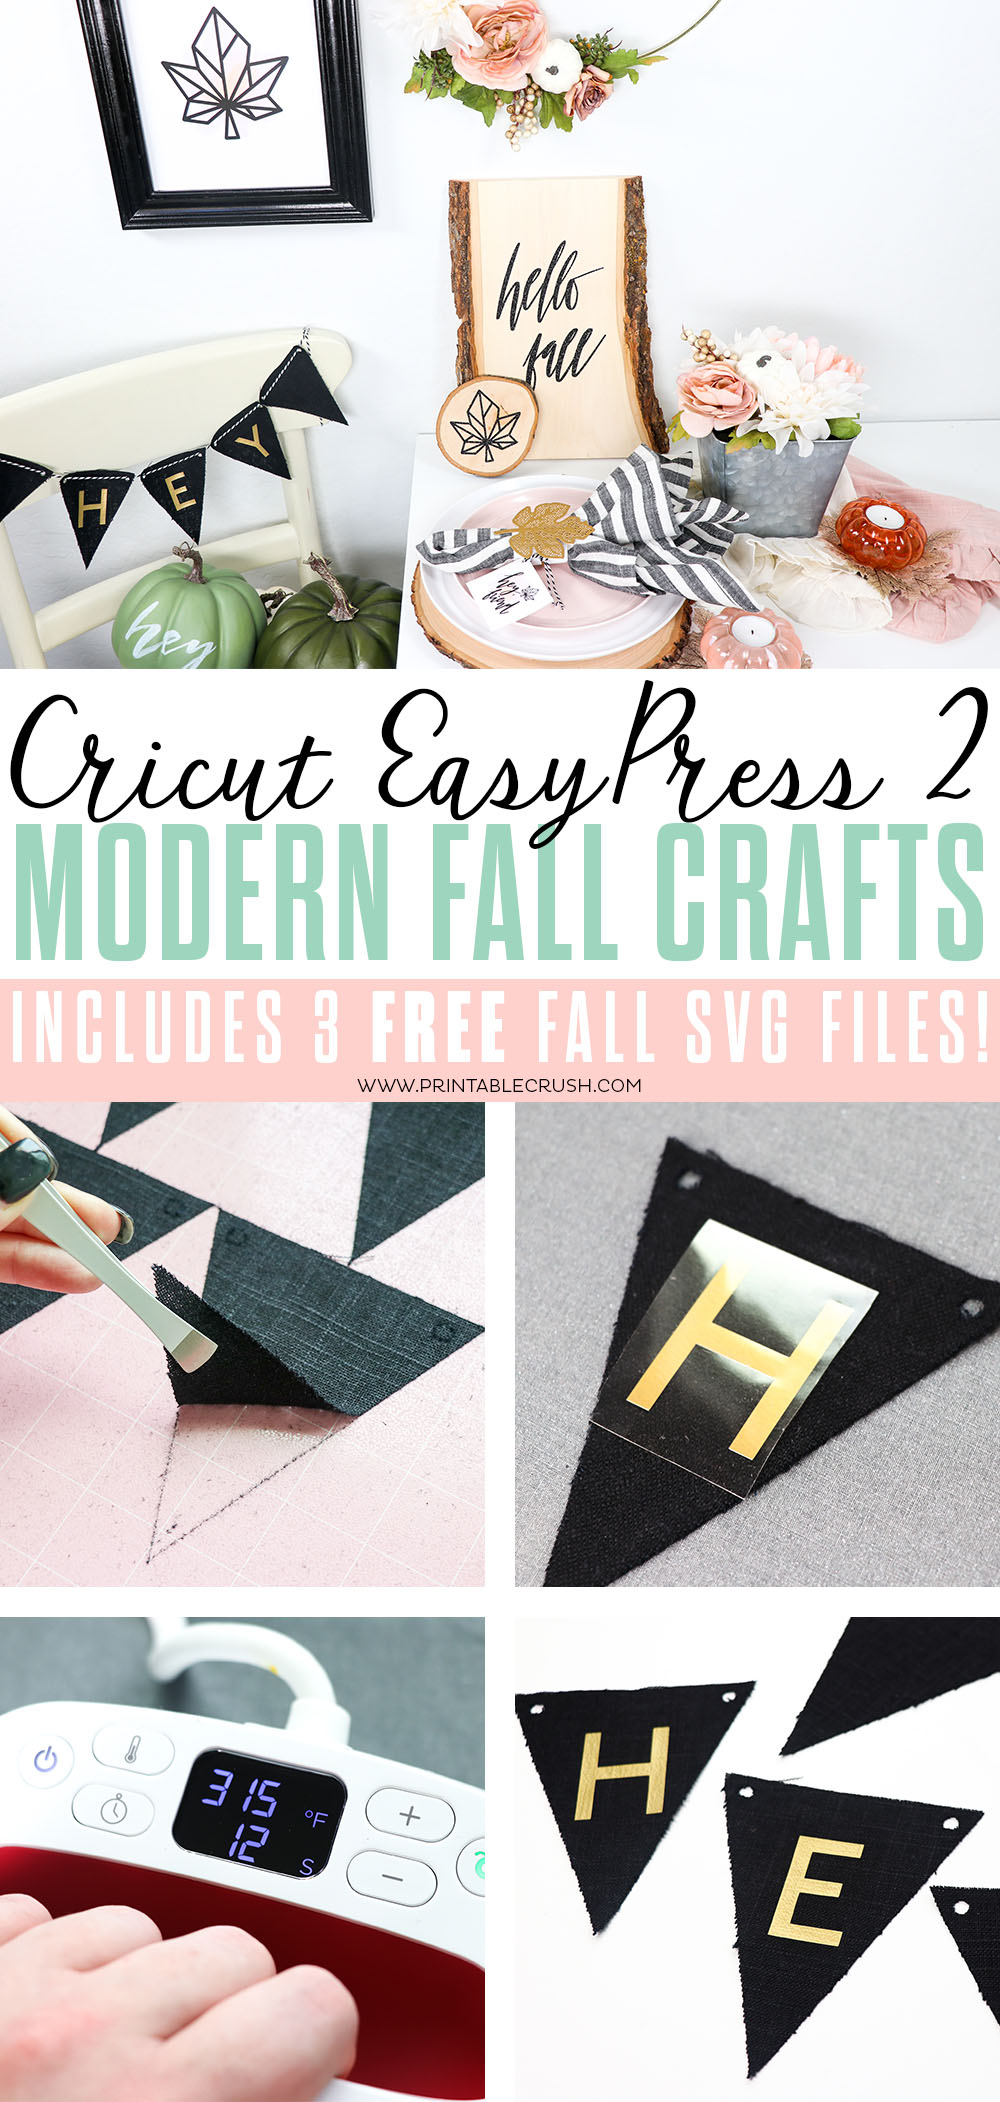 These Cricut EasyPress 2 Modern Fall Crafts and FREE SVG Files are perfect for Thanksgiving or Fall home decor and parties! ! #easypress2 #cricutmade #cricutcraft #cricutmaker #glitterironon #woodplank #walnuthollow #fallhomedecor